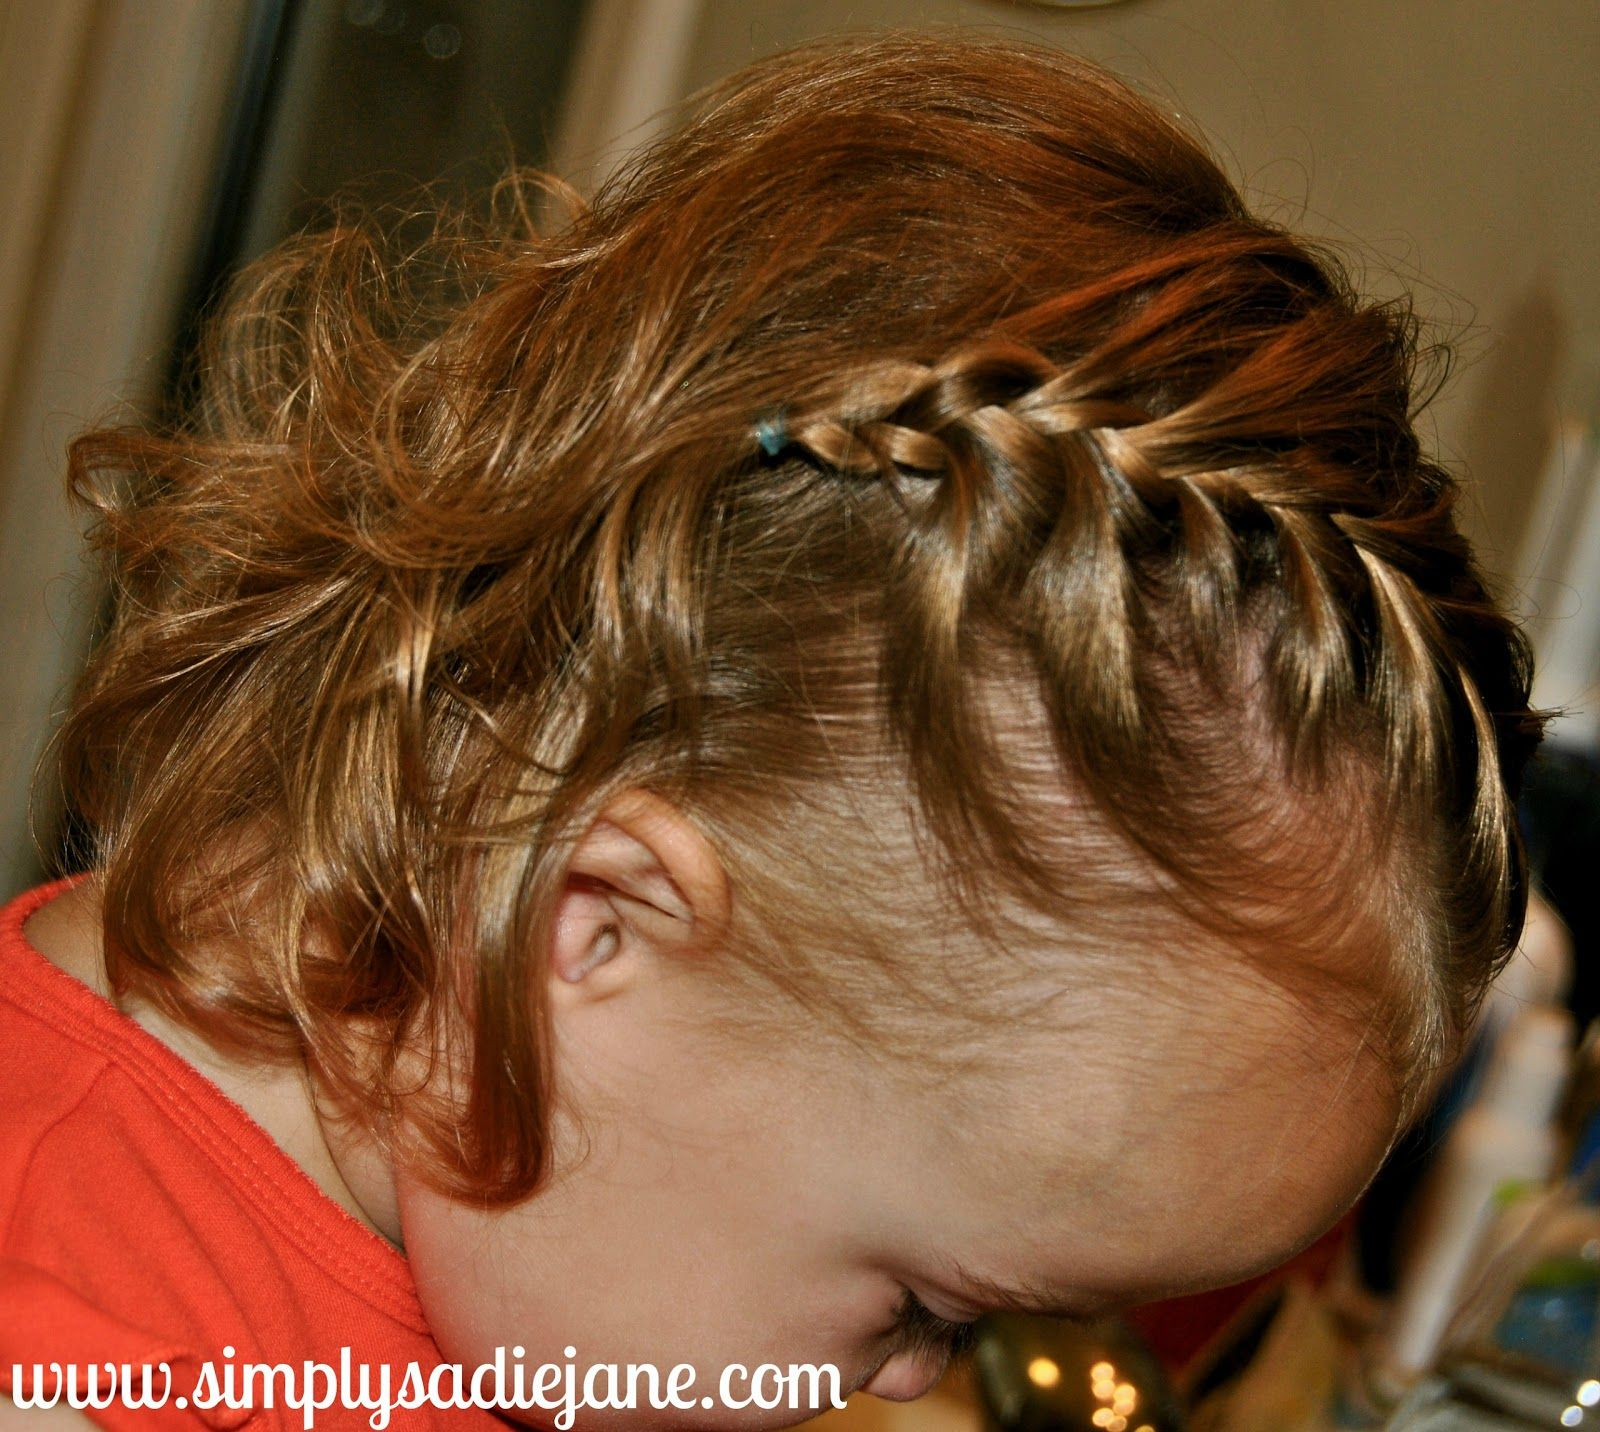 Simply Sadie Jane – 22 MORE fun and creative TODDLER HAIRSTYLES!! ... If i can get her to sit still looking enough!